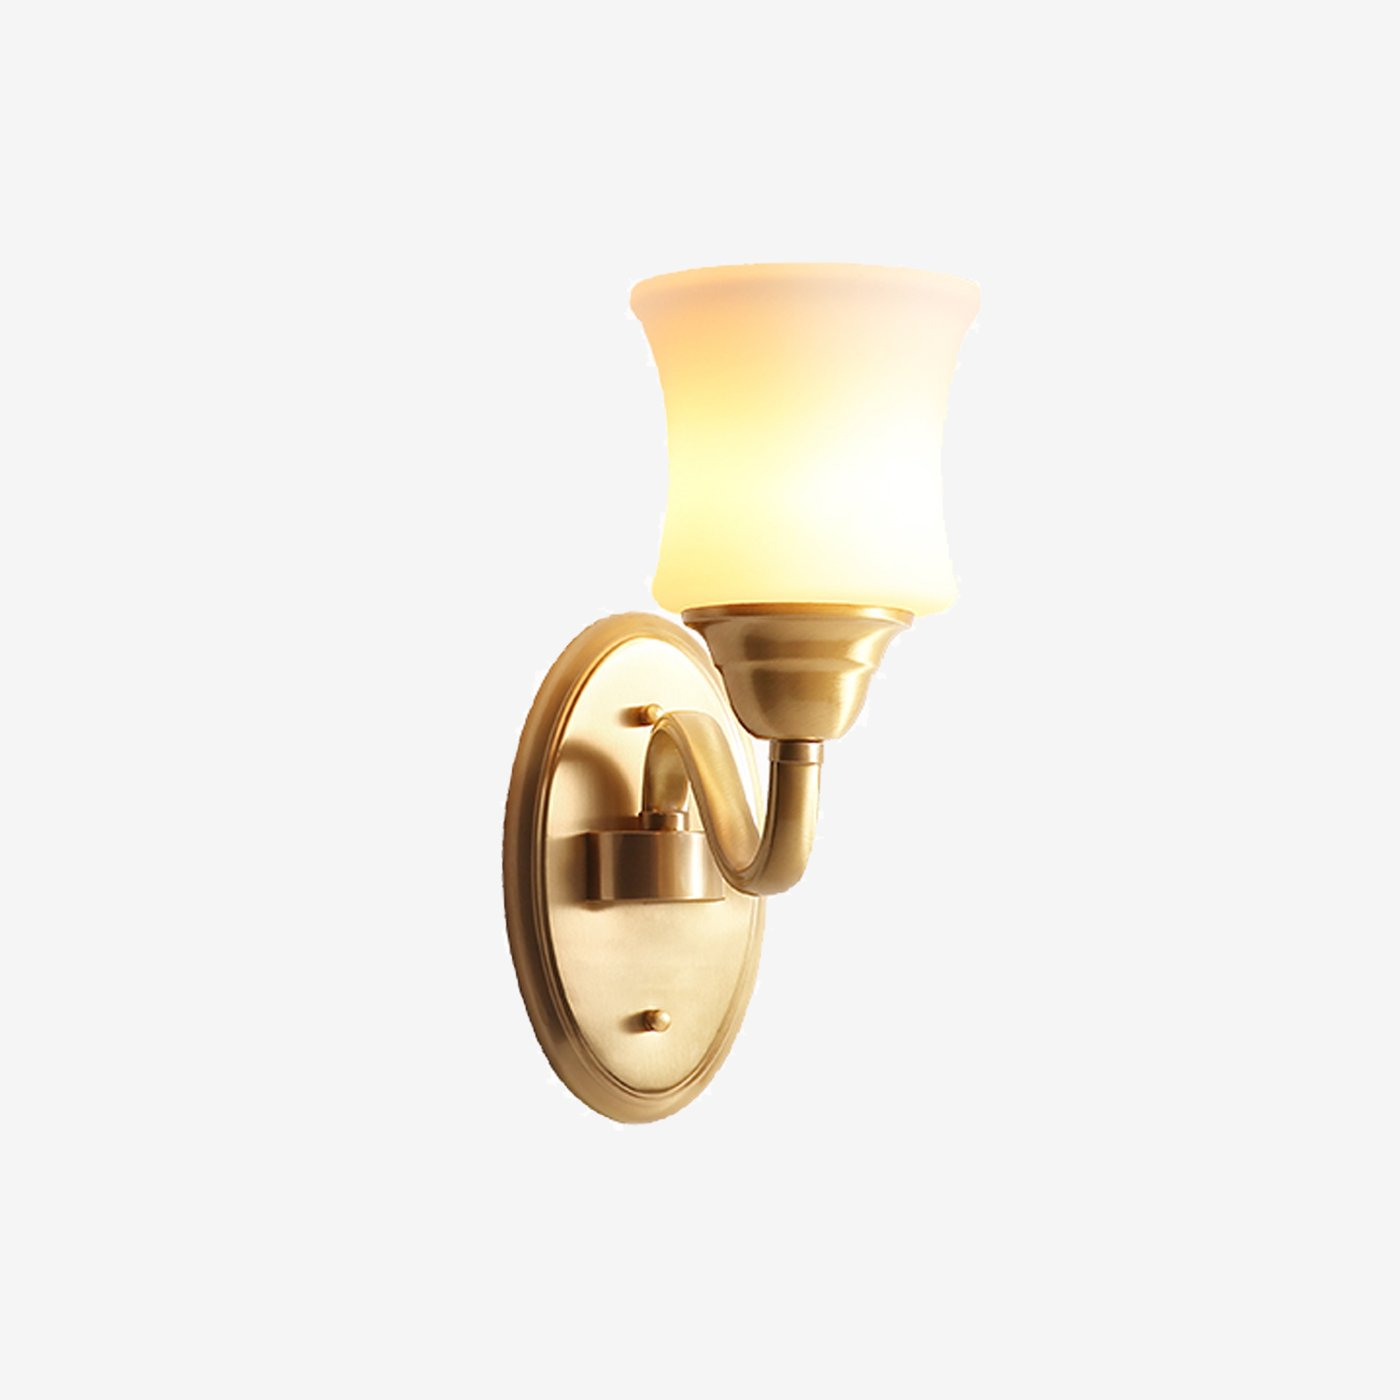 Wall Lamp Brass Finish With Glass Shades